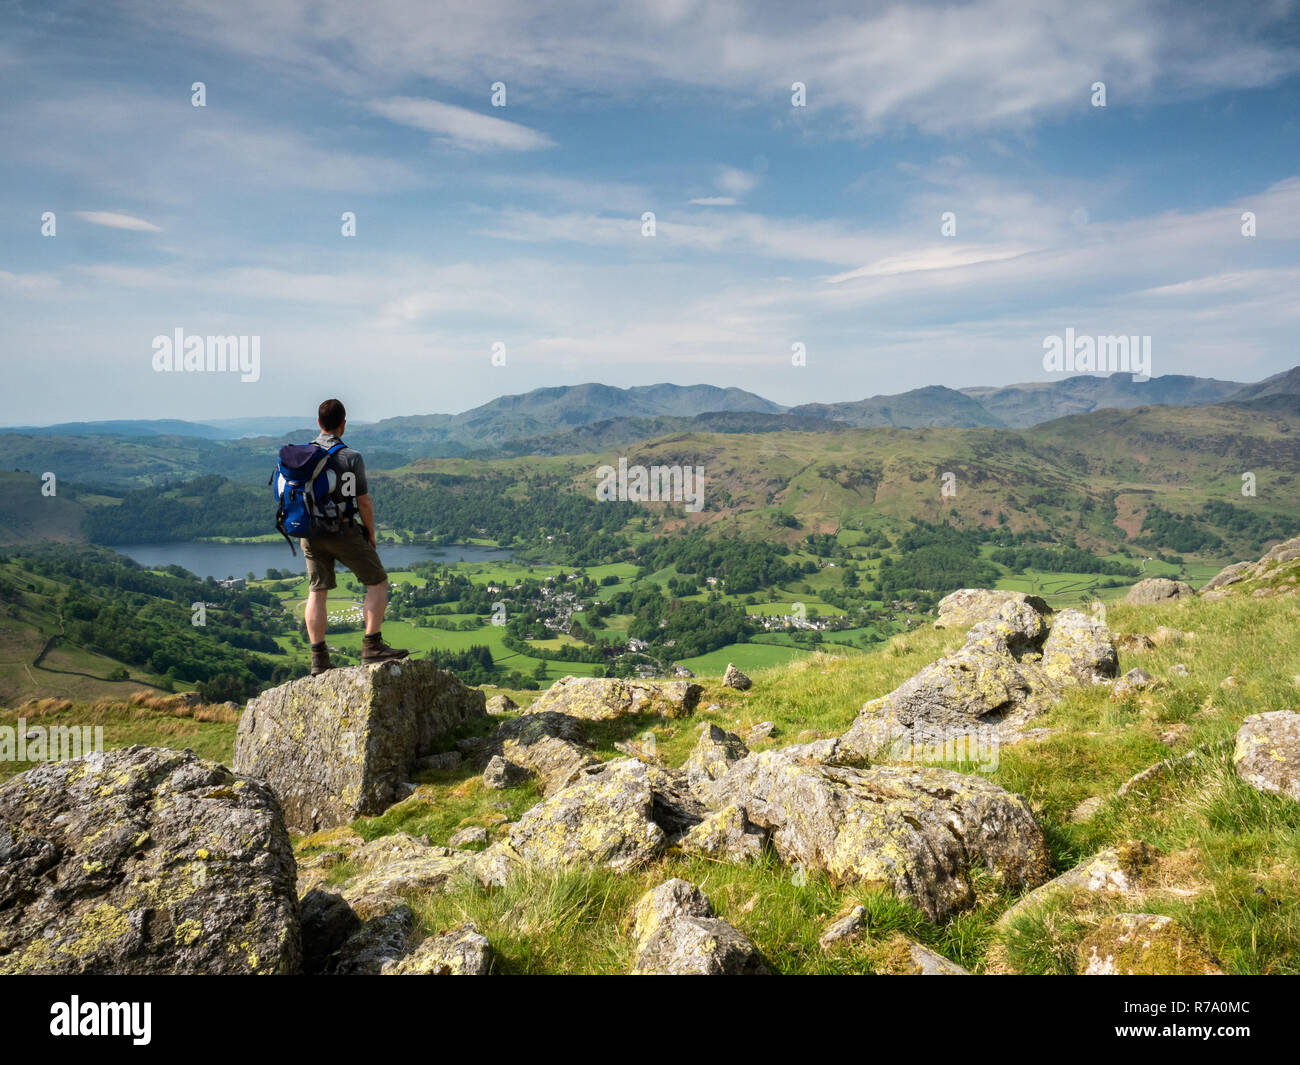 A man enjoys the view towards Grasmere from Stone Arthur, a rock formation in the Lake District, Cumbria, England. Stock Photo